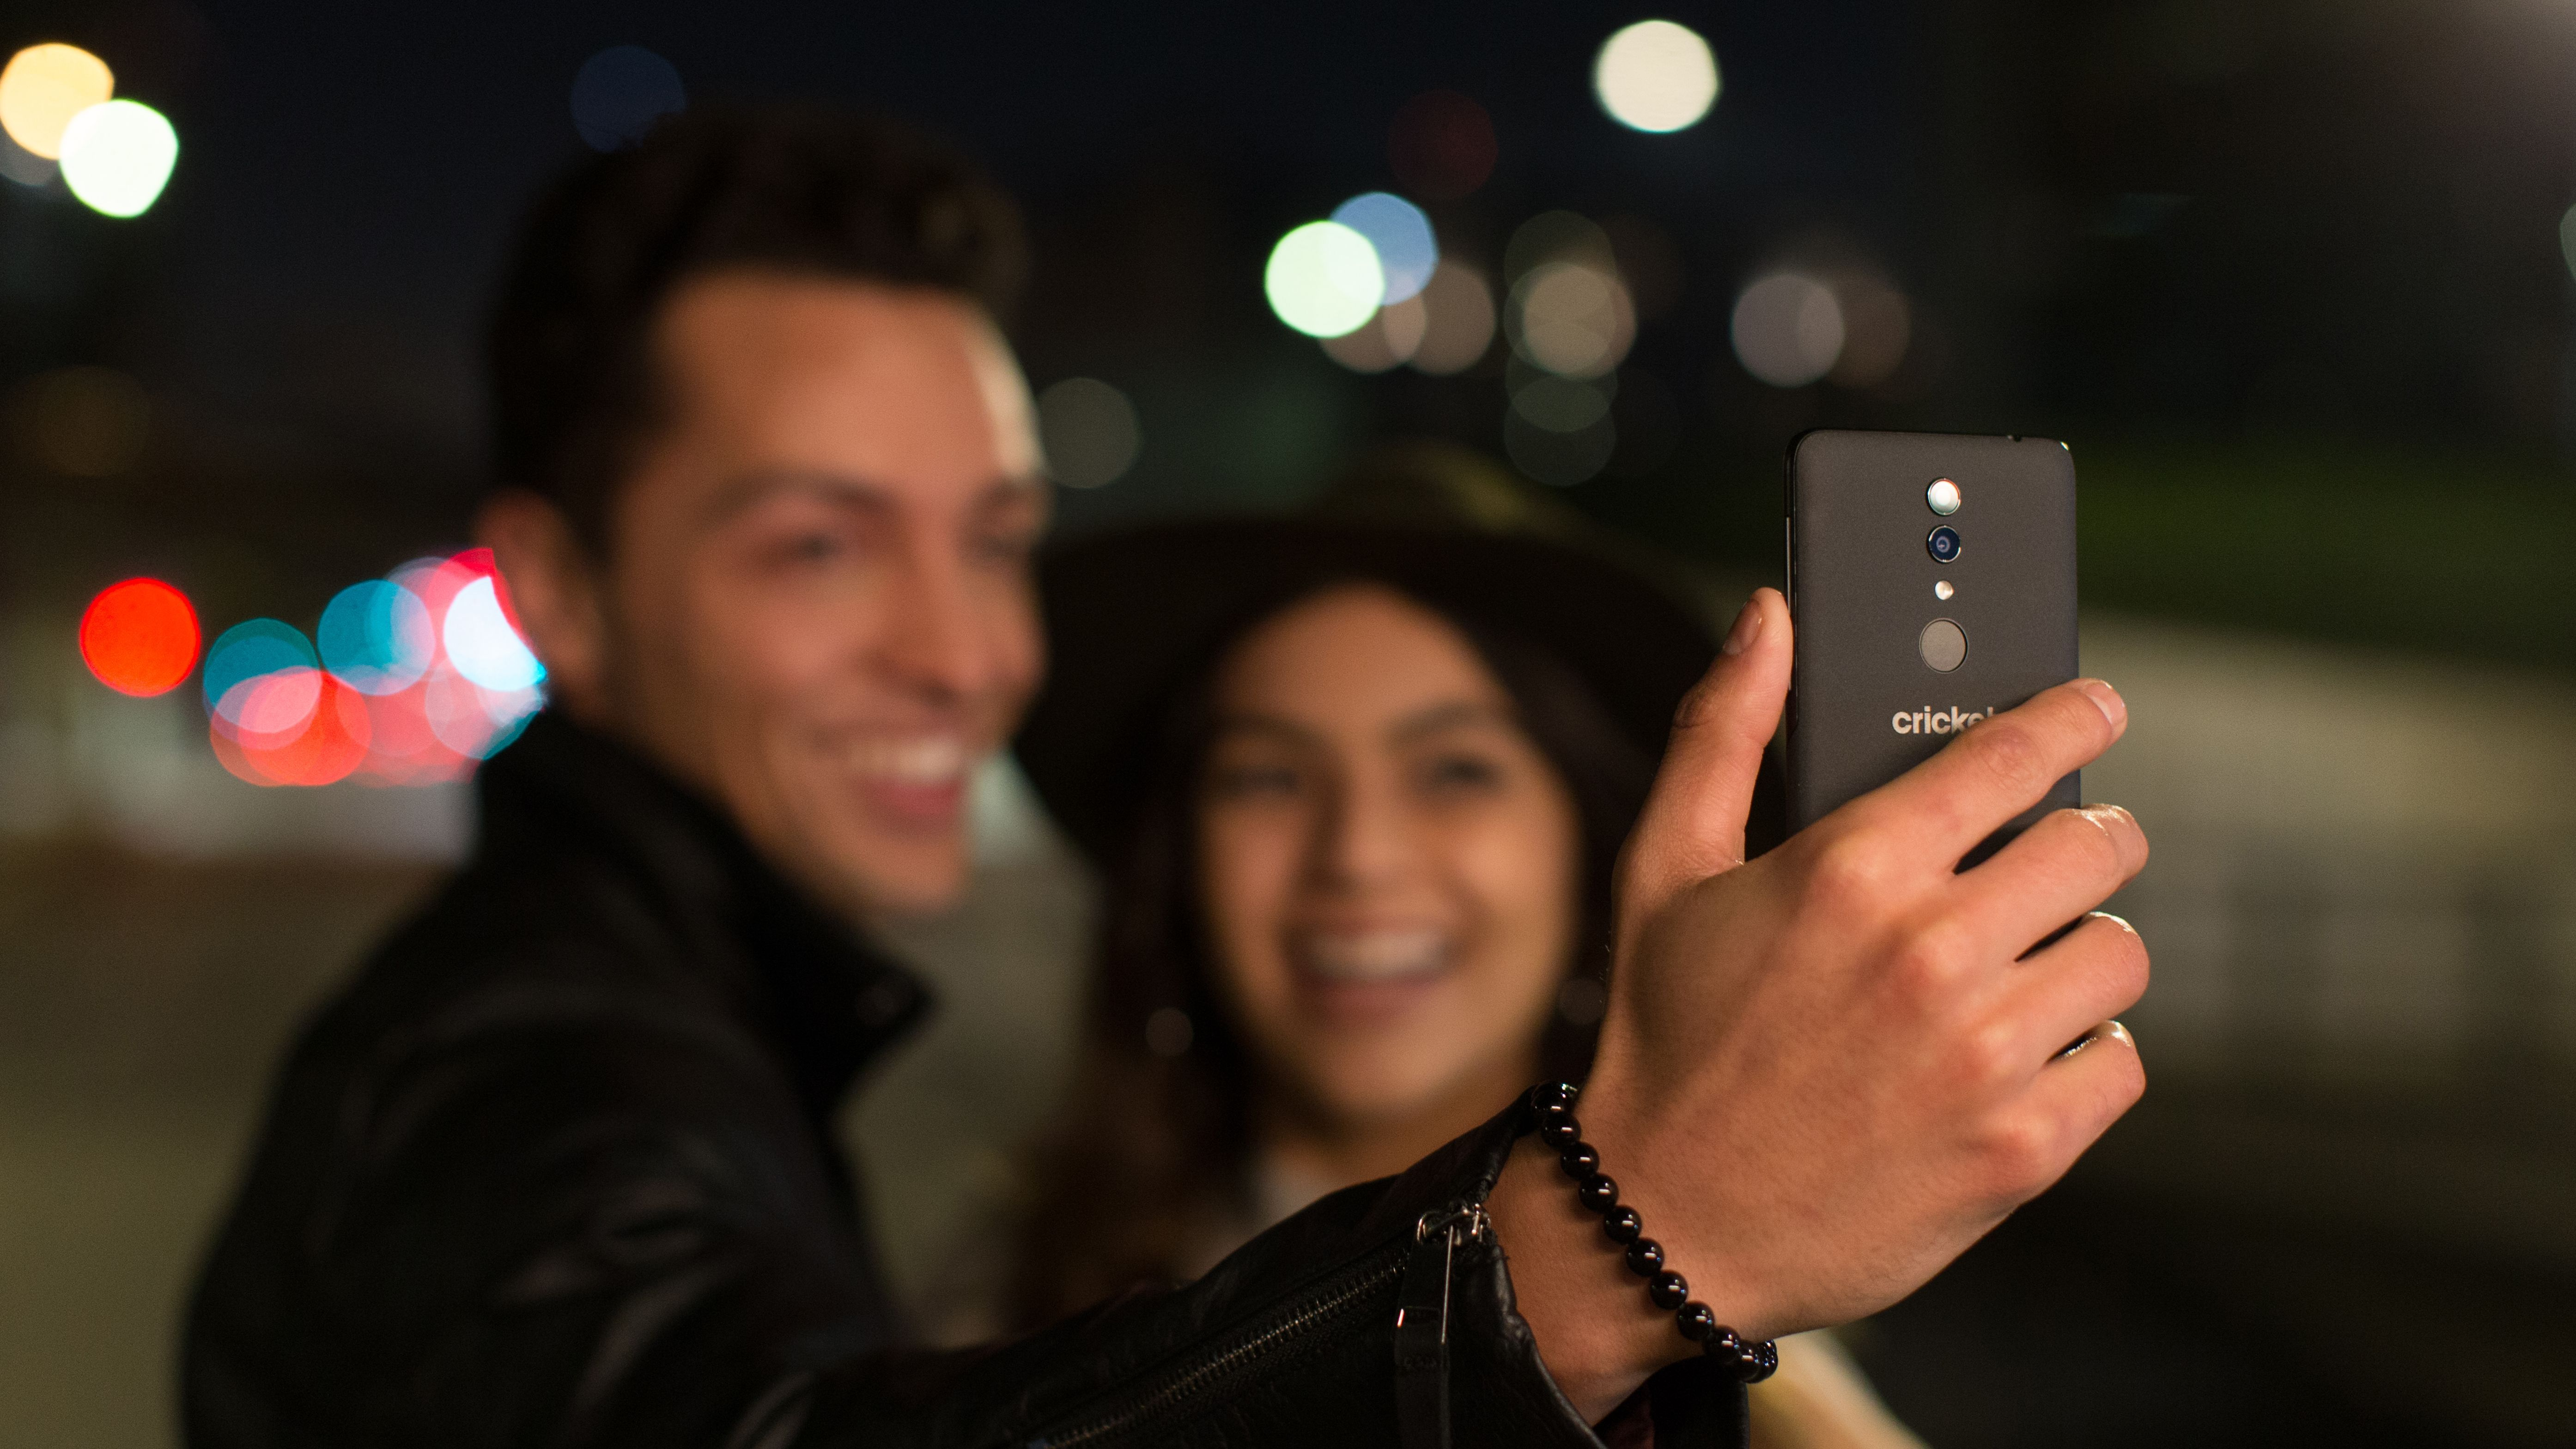 Alcatel Onyx Is A Souped Up Version Of The Alcatel 1x Exclusively For Cricket Wireless Cricket Wireless Cell Phone Plans Phone Plans